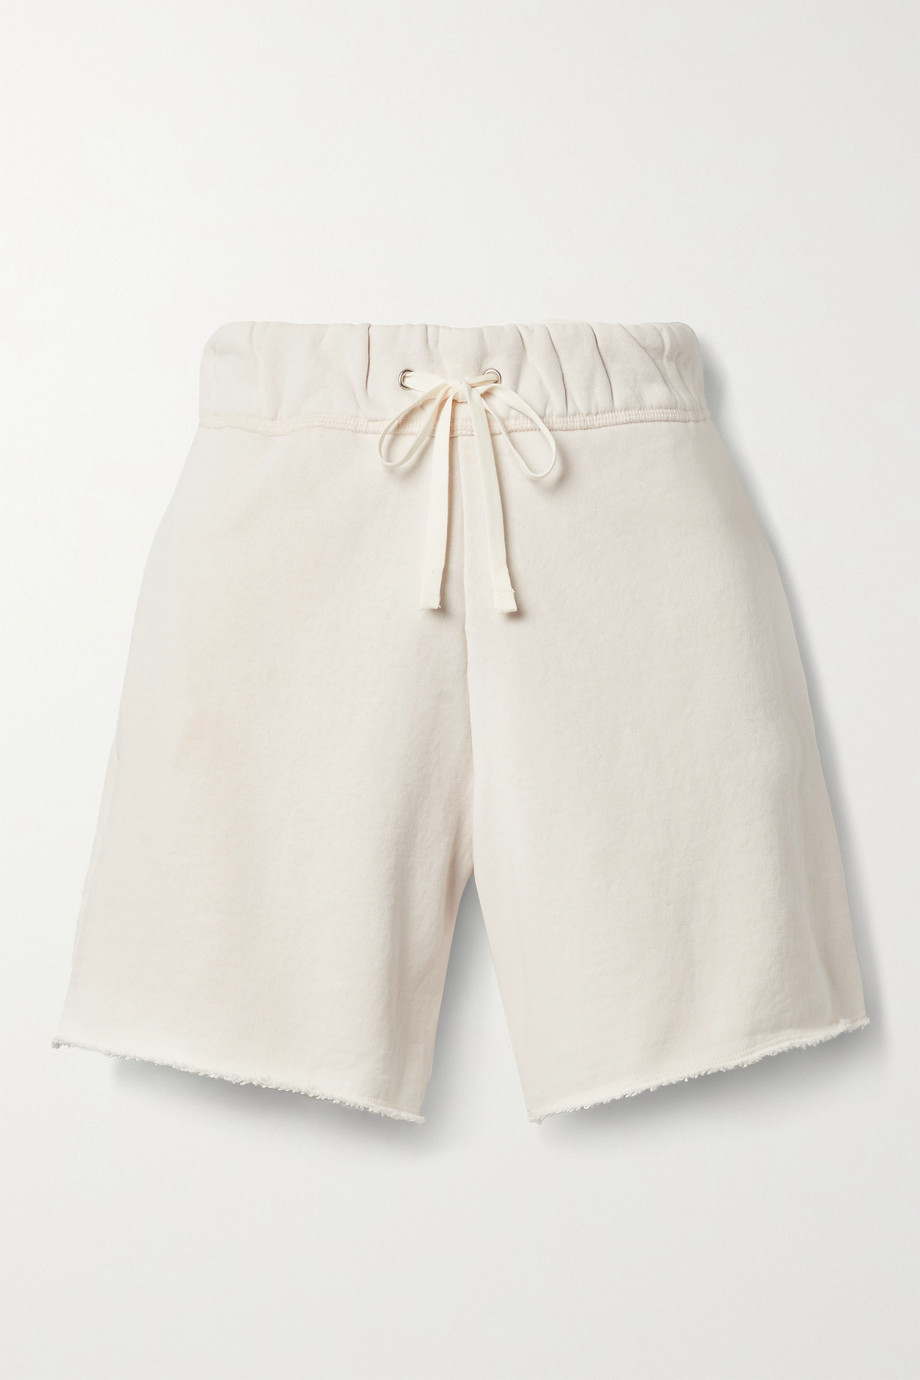 JAMES PERSE Cotton-jersey shorts